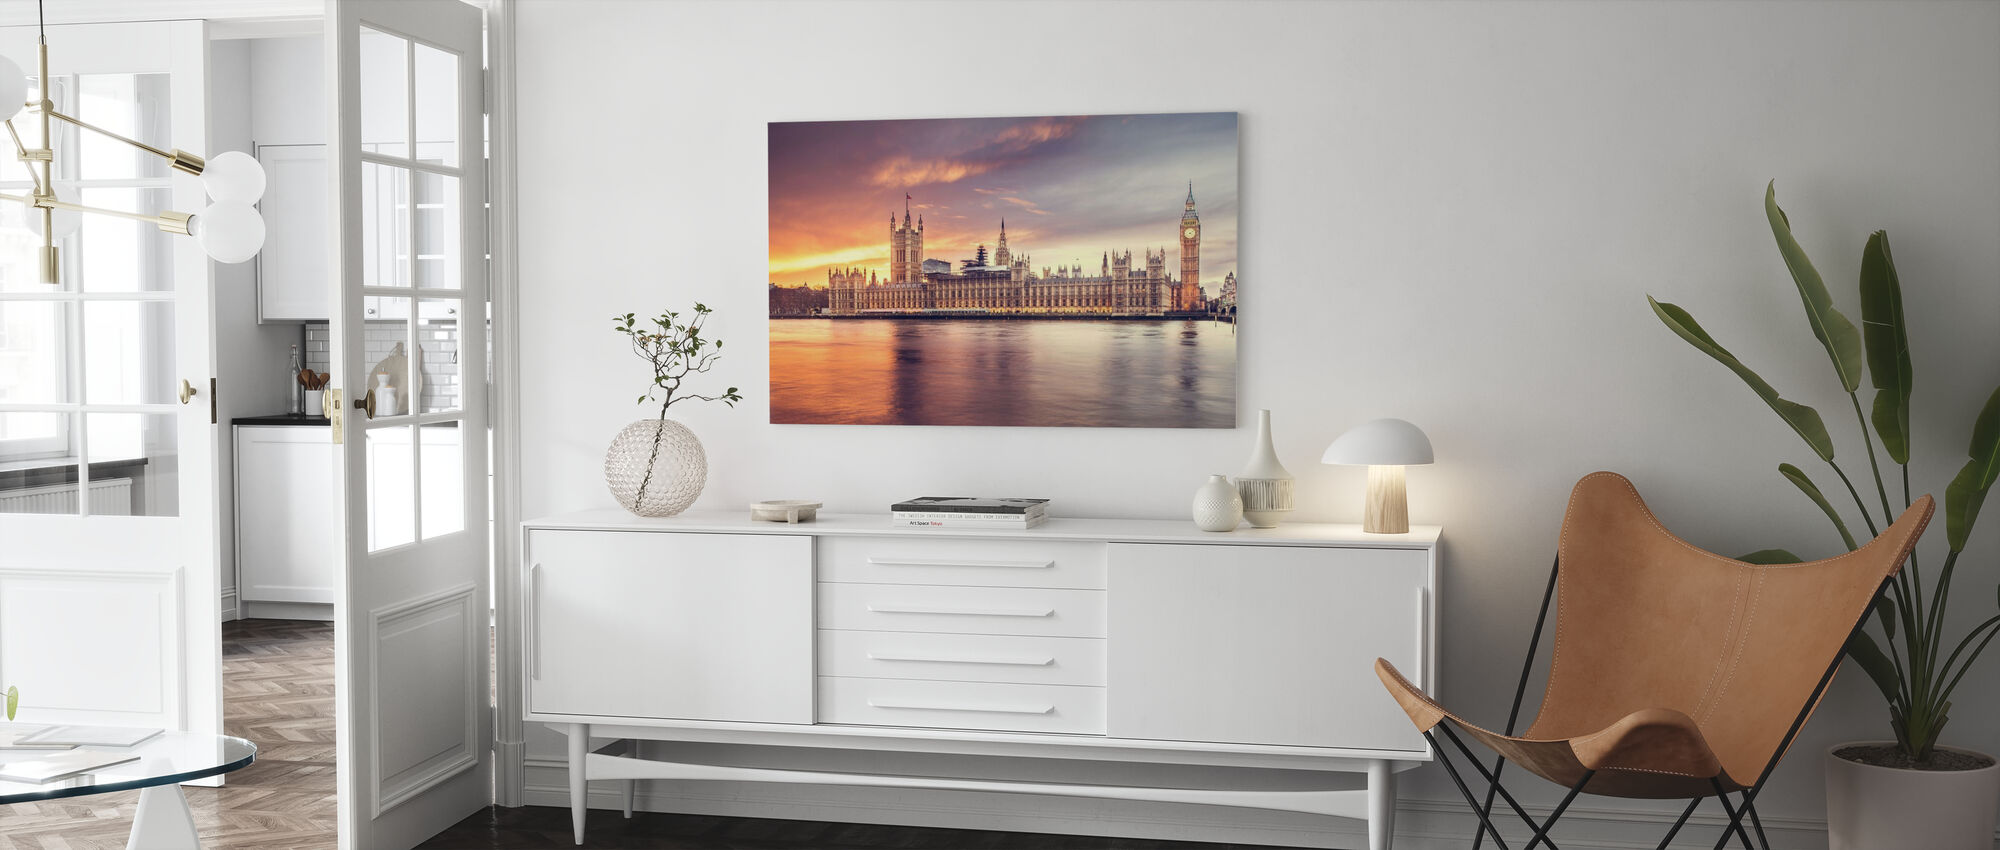 Houses of Parliament - Canvas print - Living Room